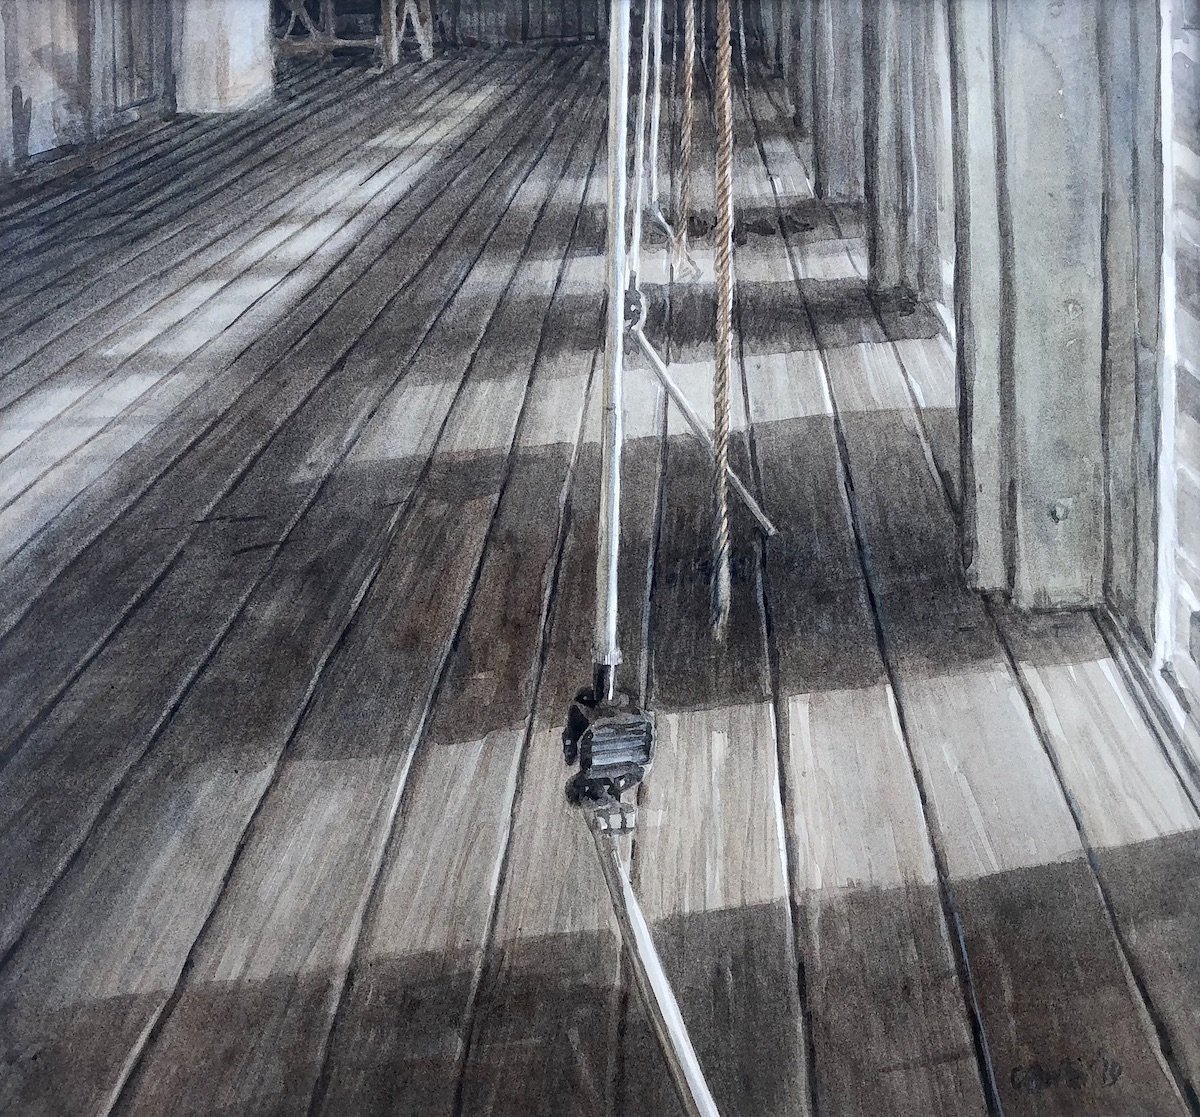 Watercolour painting by Christine Porter showing a shearing board in a big shearing shed, with sunlight from the doorways at each stand, and the downtube and ropes of the shearing tools.